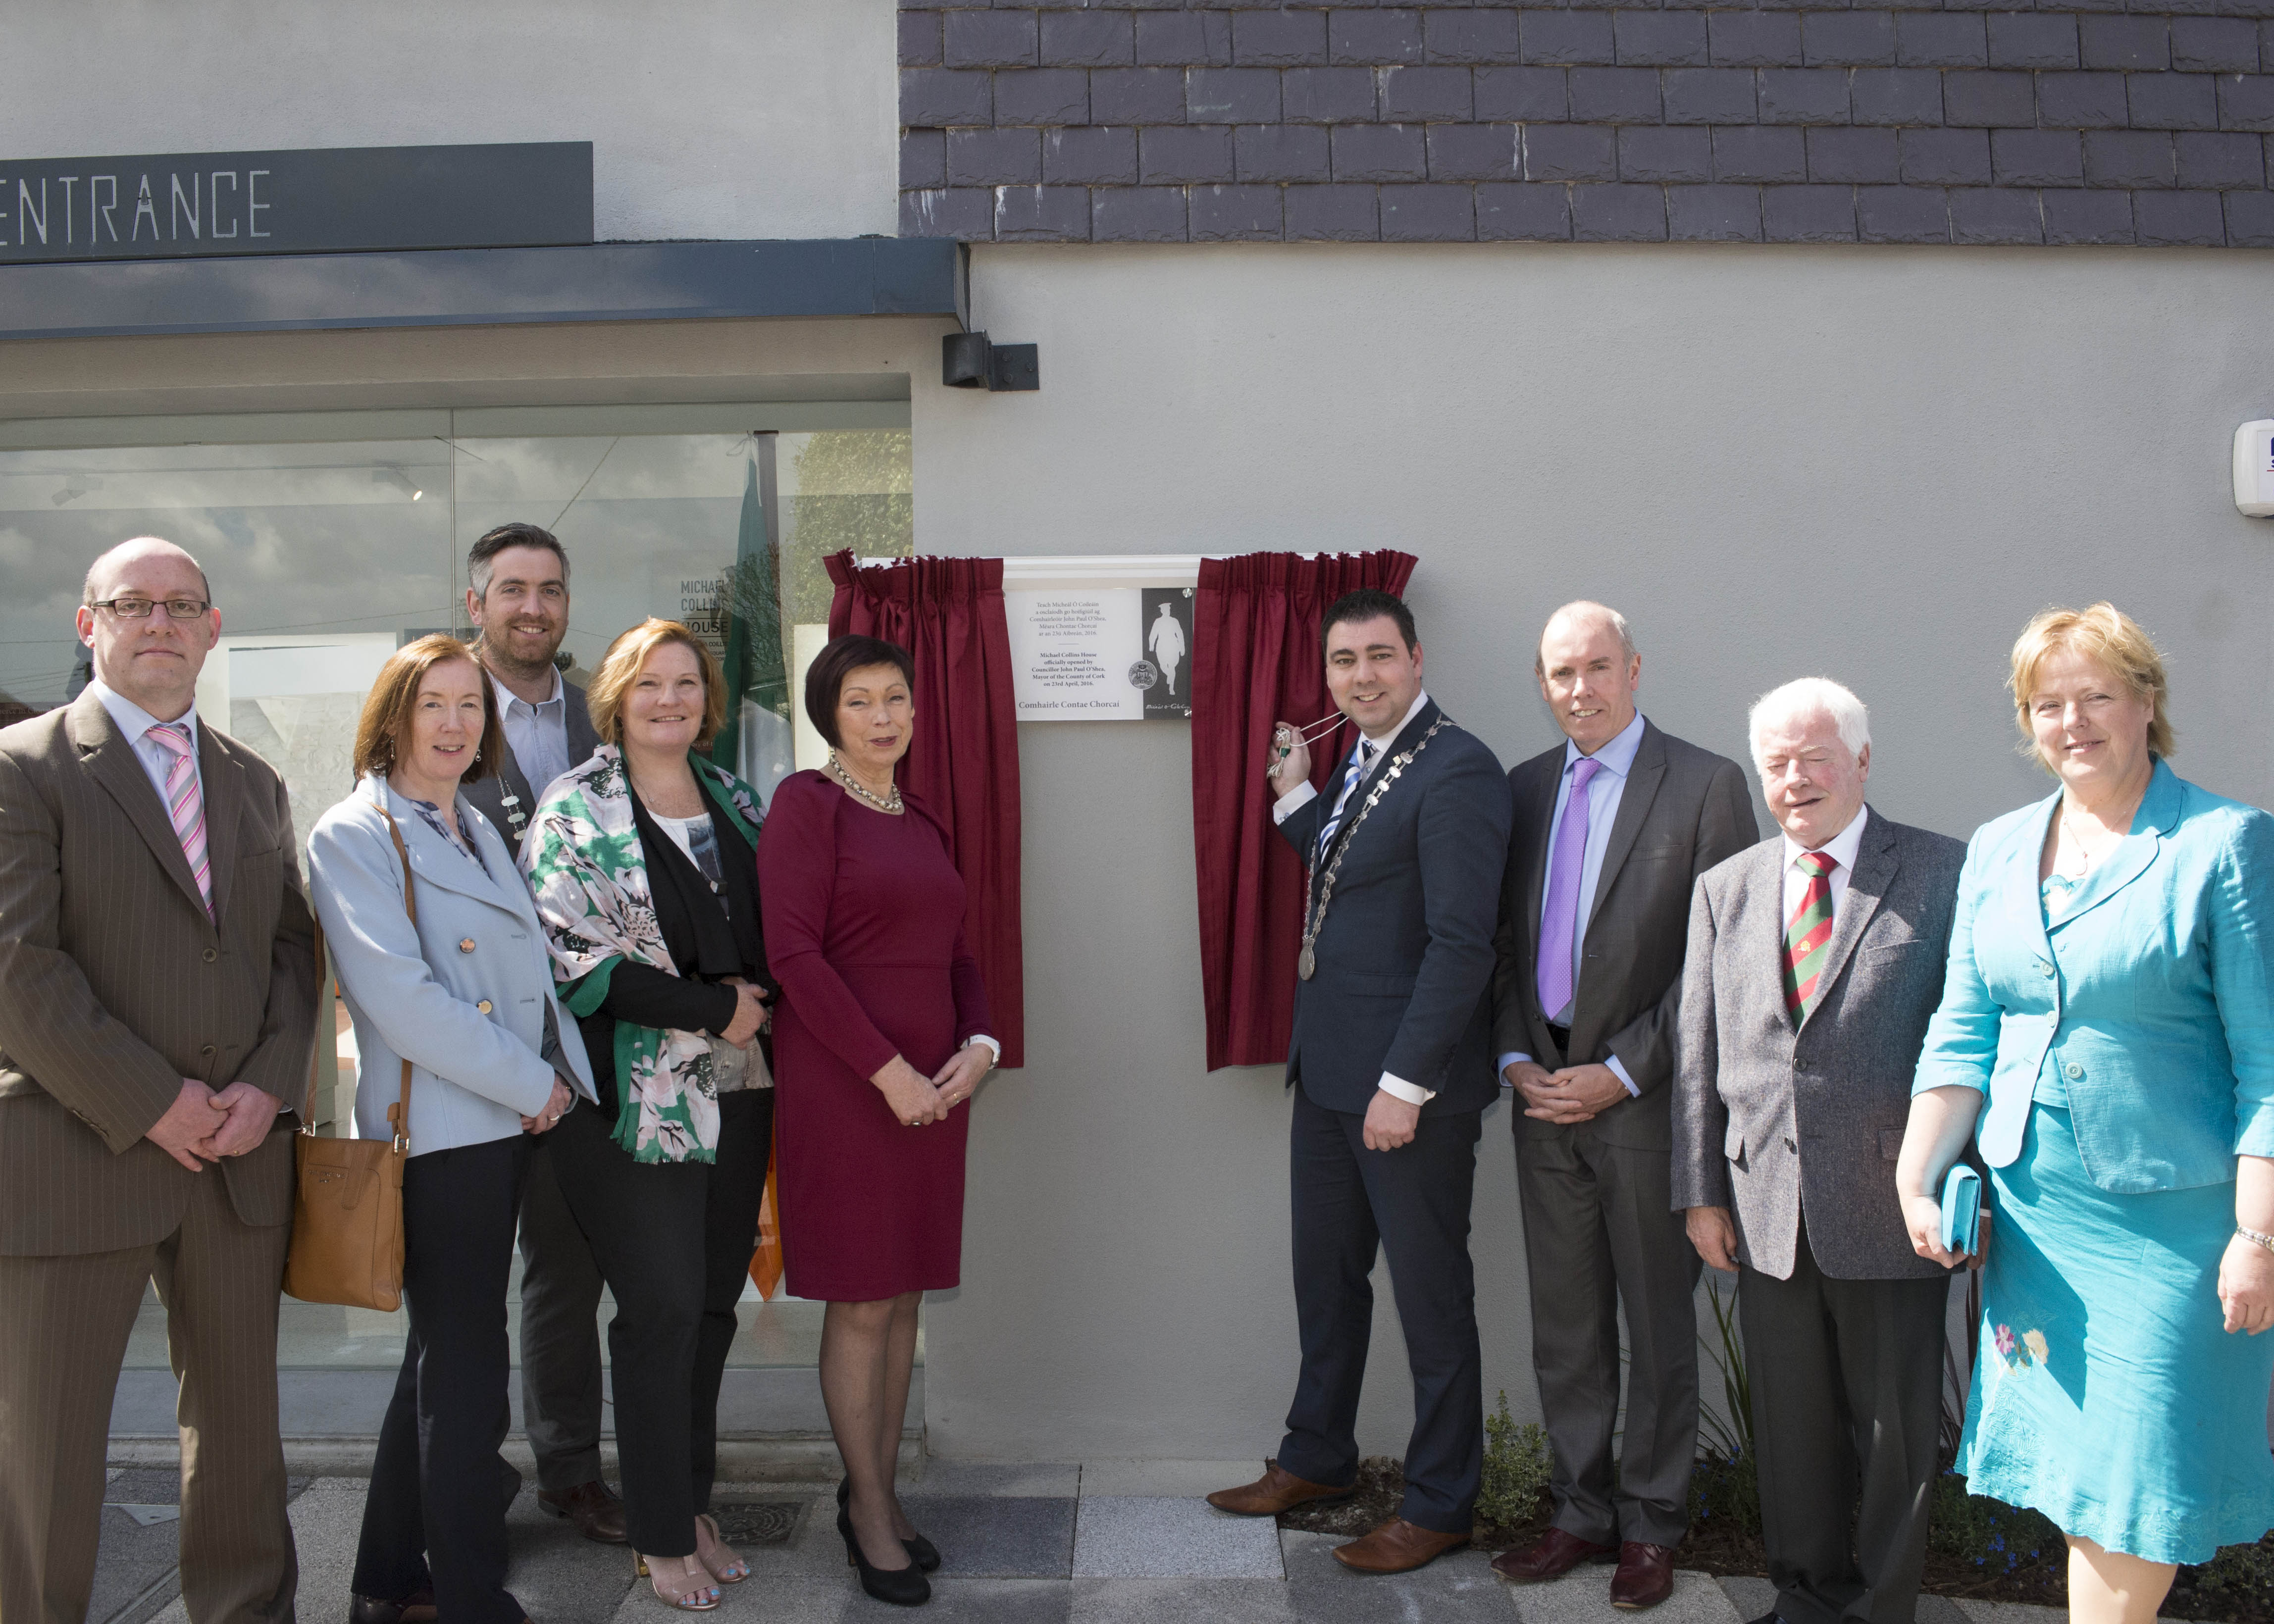 Mayor of County of Cork Opens Michael Collins House Museum in Clonakilty